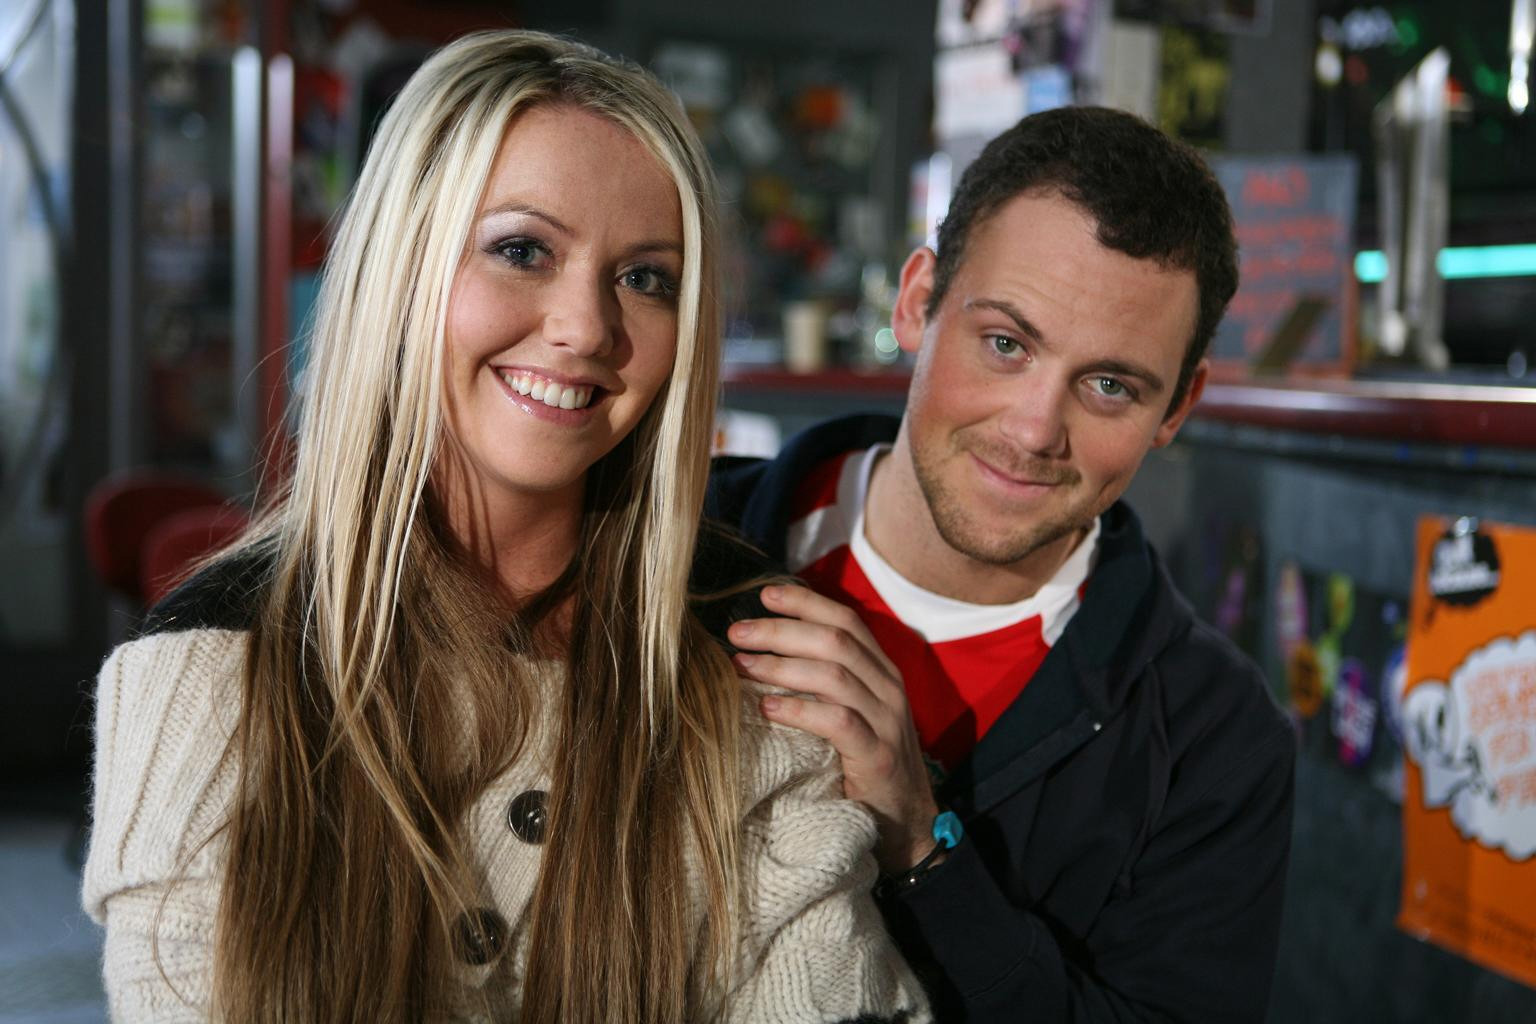 Hollyoaks' Kelly objects to 'disabled' label